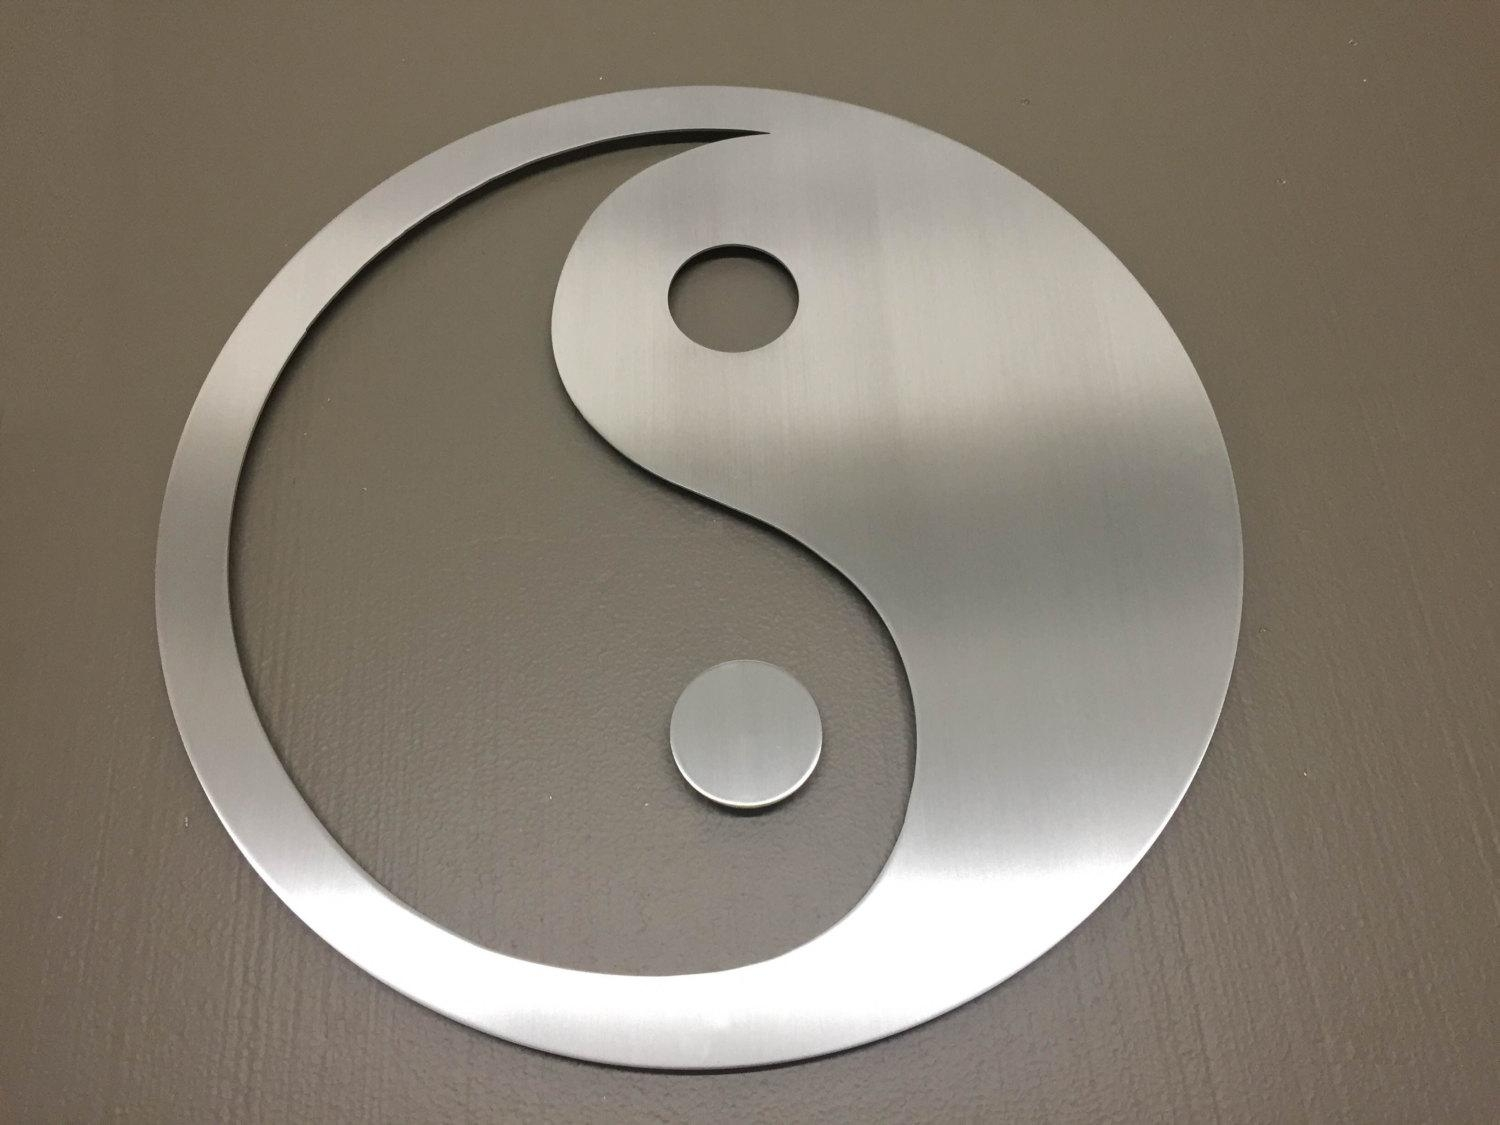 Yin Yang Metal Wall Art Wall Art Metal Wall Decor Metal Inside Yin Yang Wall Art (Image 16 of 20)